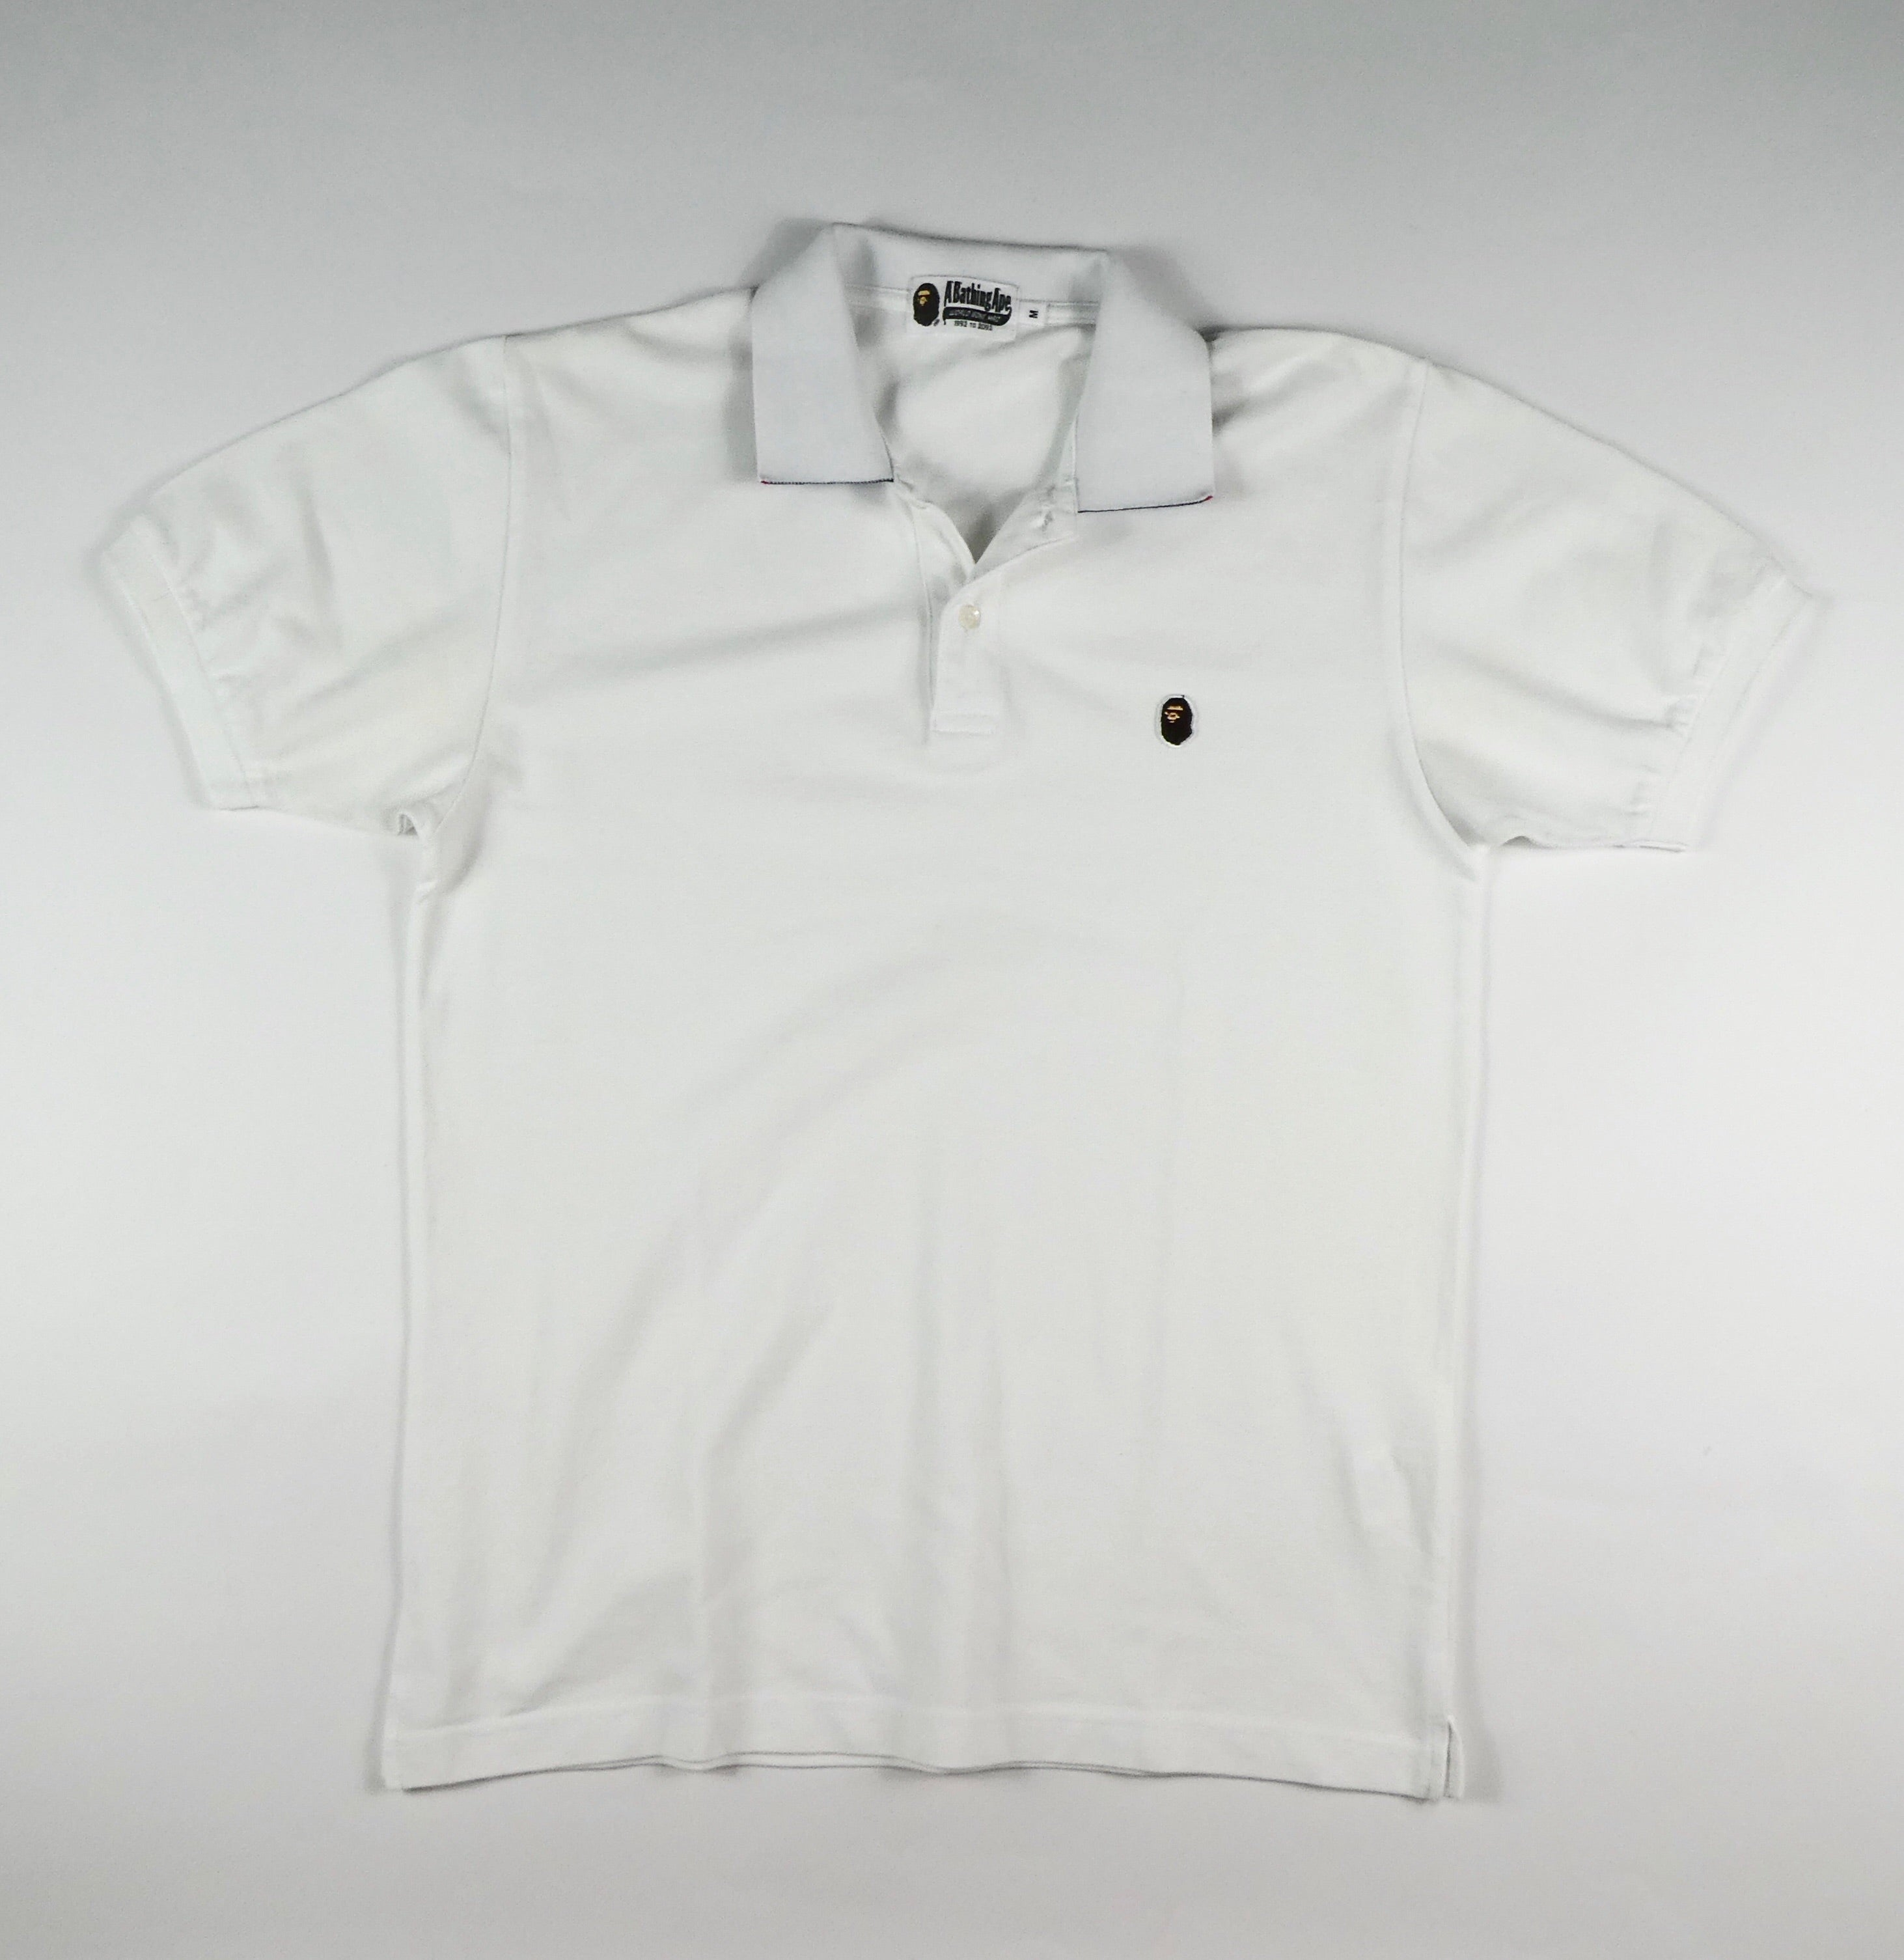 Bape Ape Head Polo Shirt - Medium